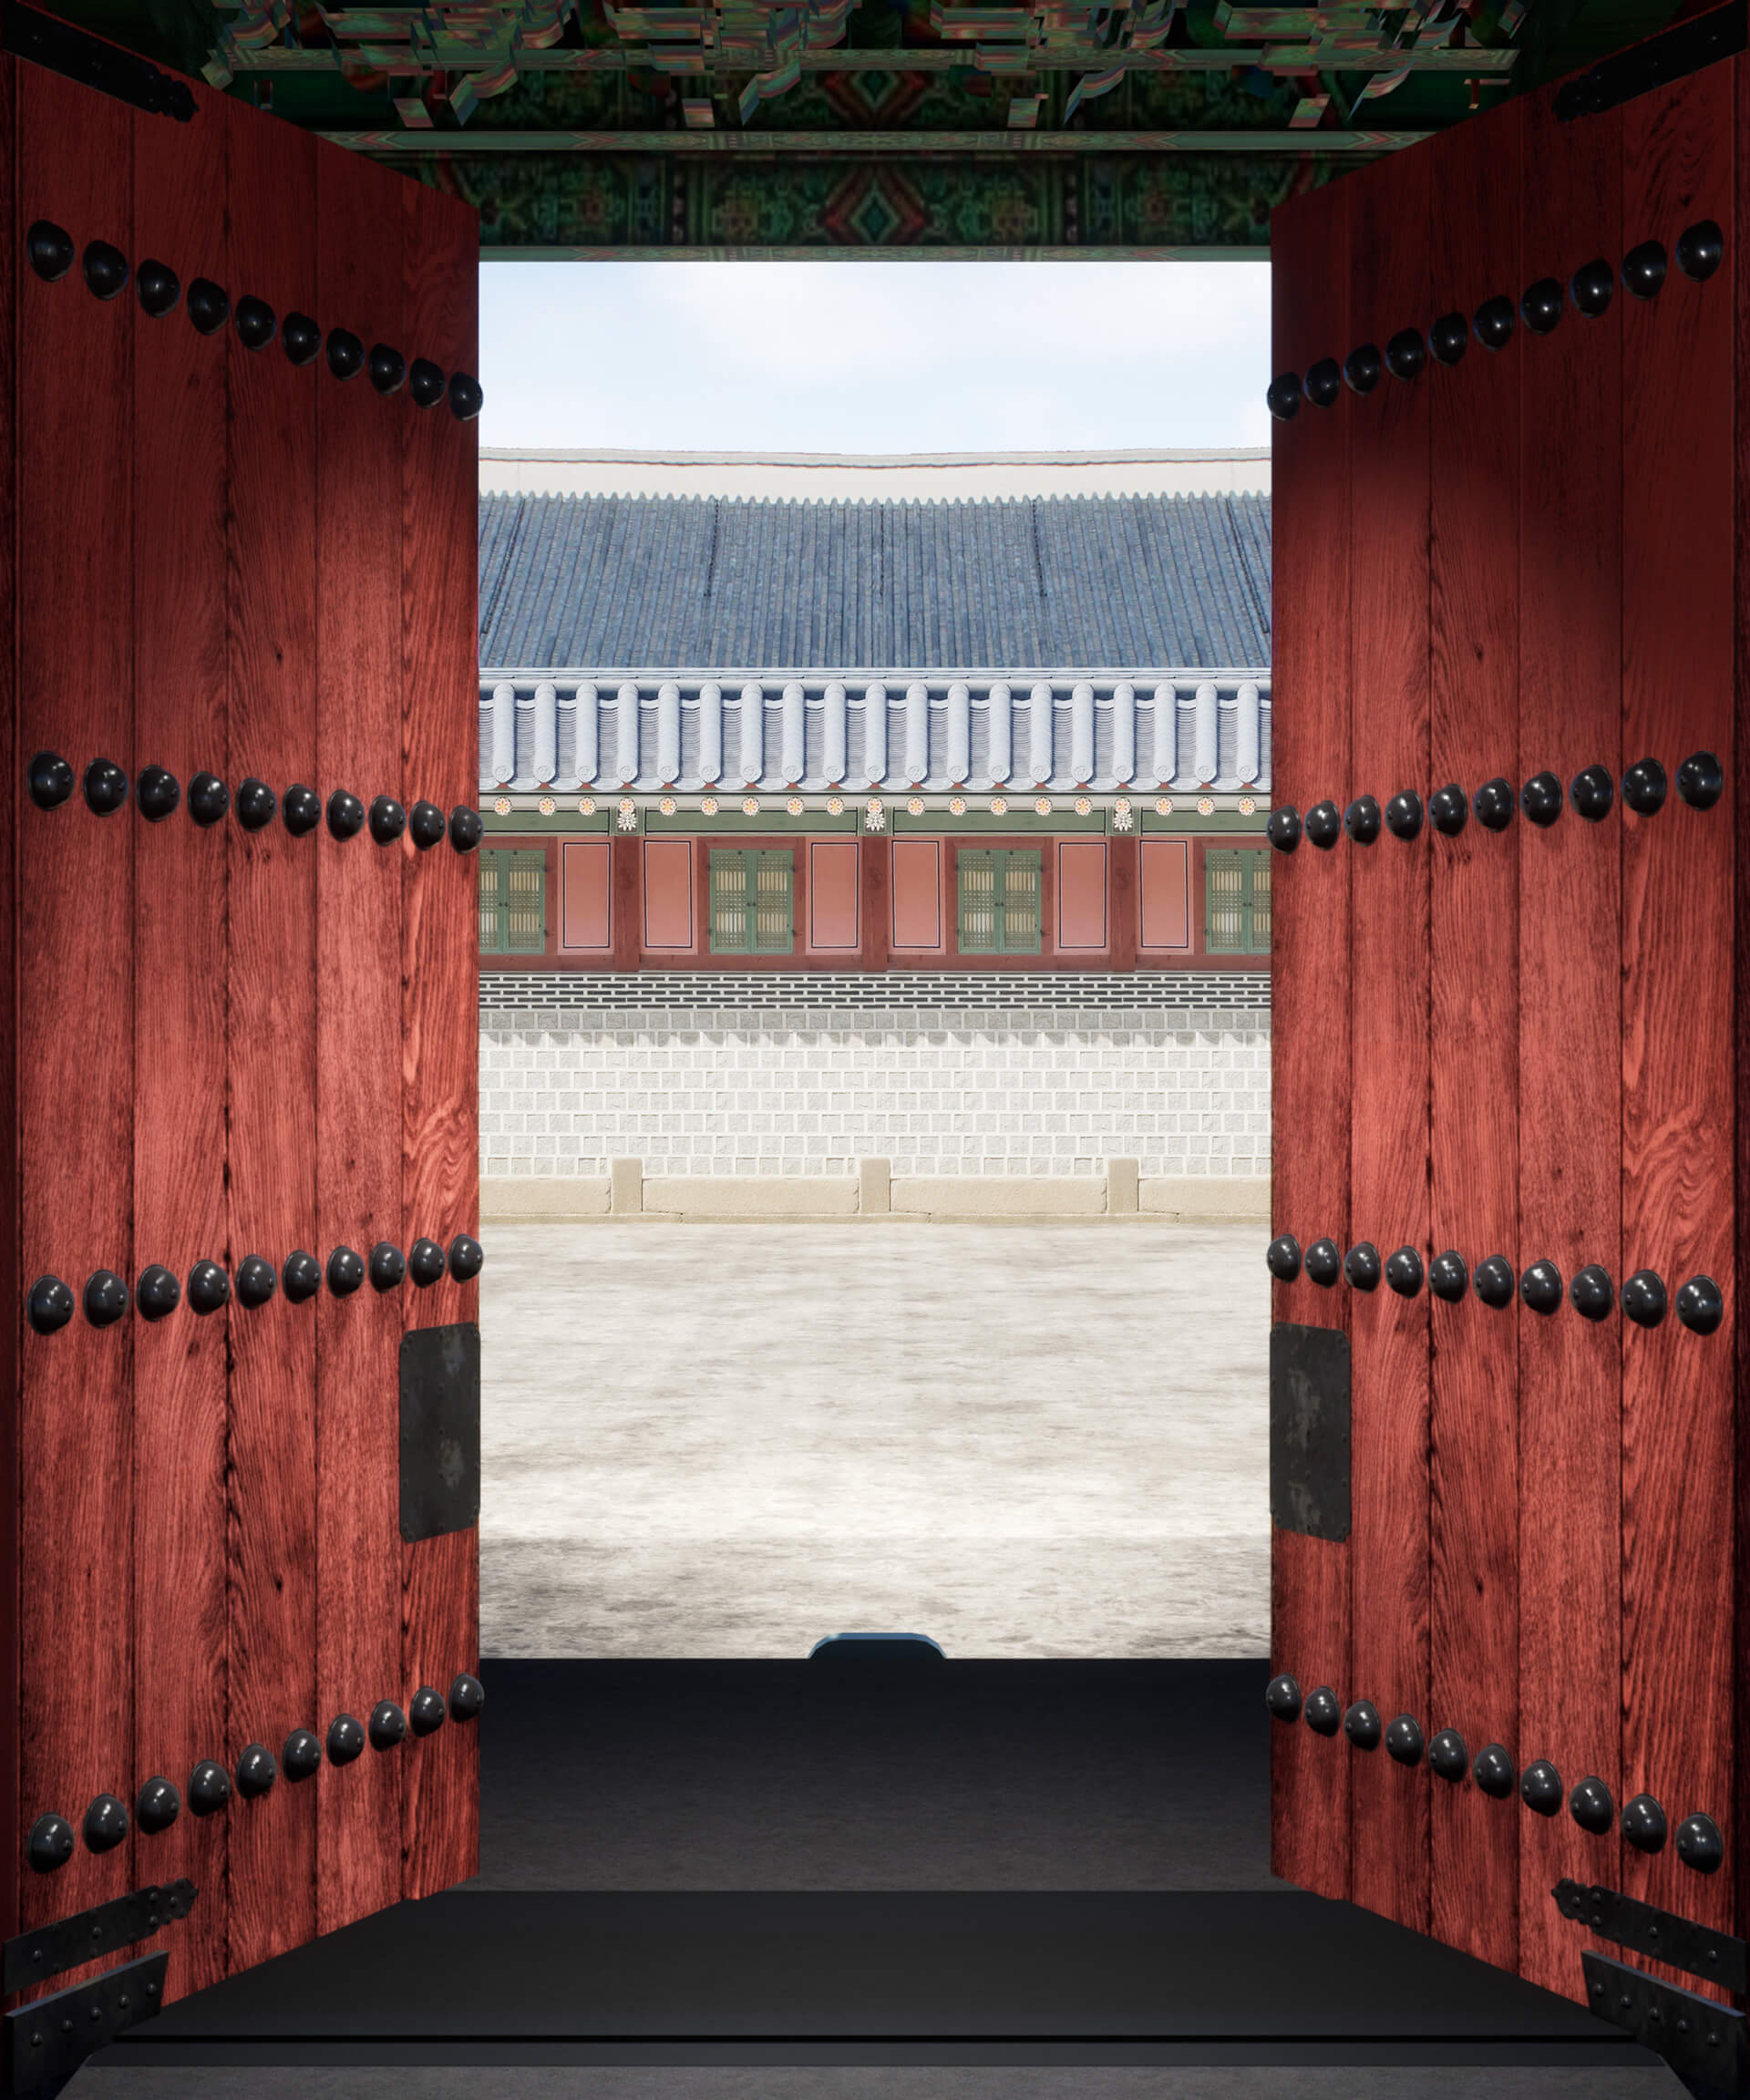 The video begins with closed red timber gates with their metal bolts alluding to the traditional Dancheong aesthetics. | Gate of Bright Lights | Space Popular | STIRworld